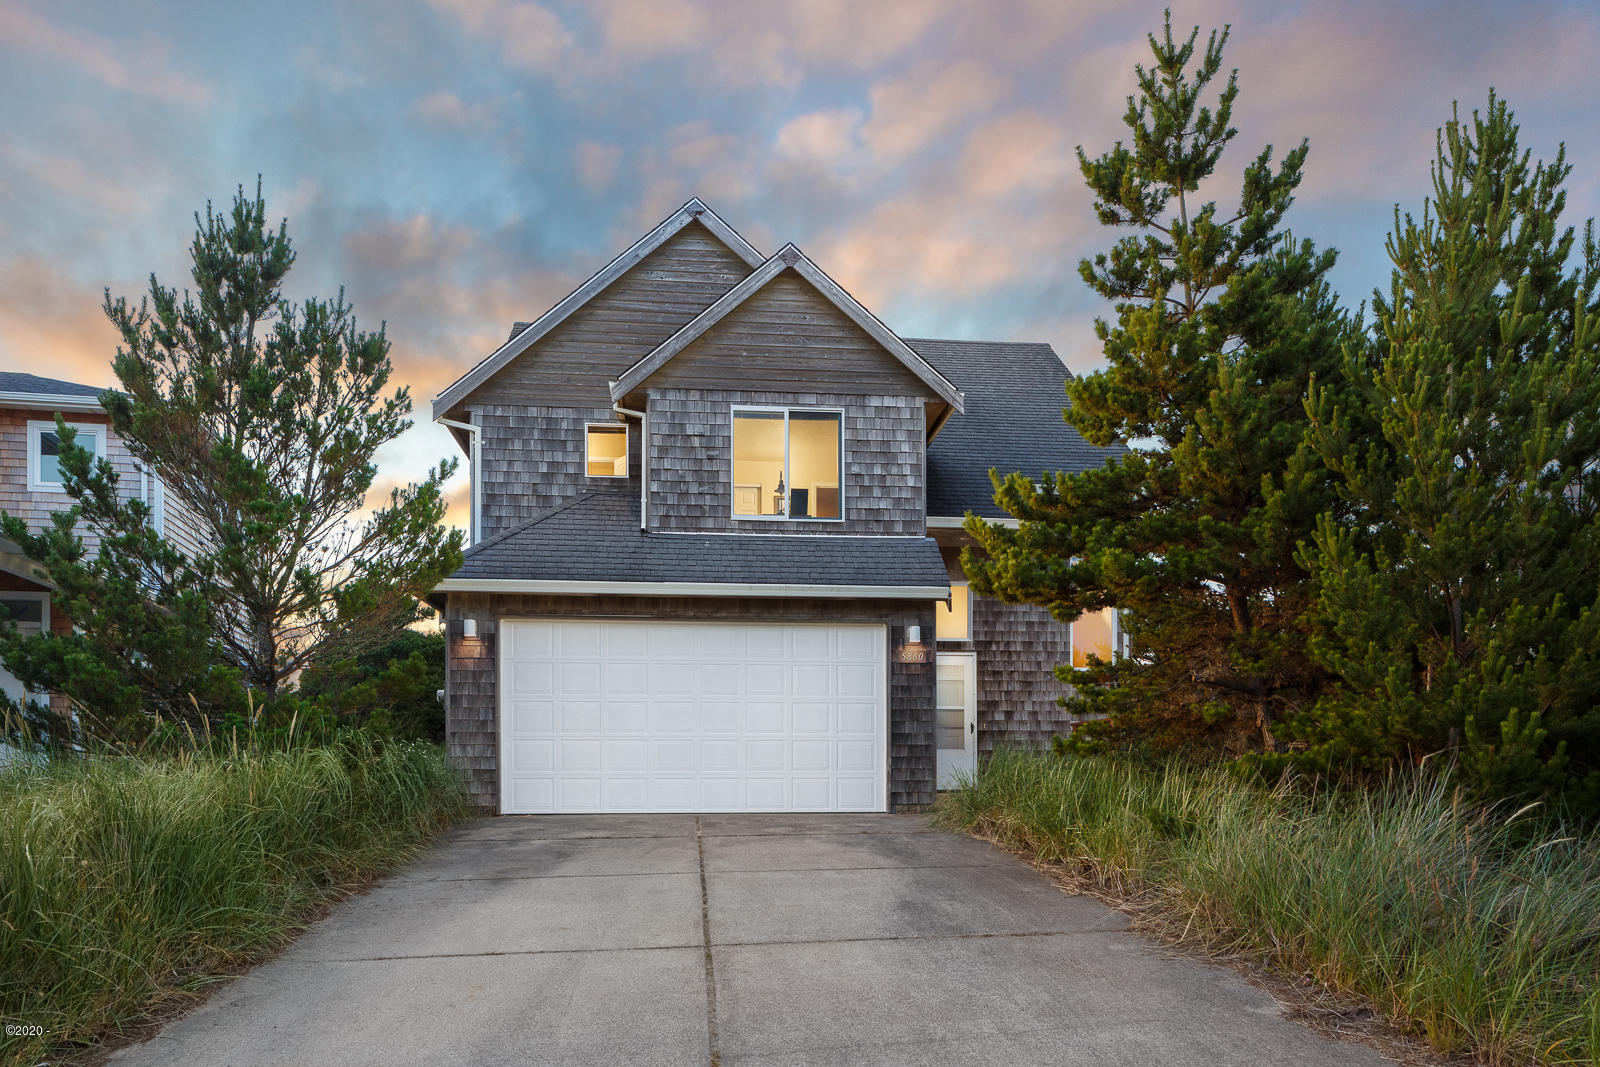 5860 Neptune Drive, Pacific City, OR 97135 - Exterior from Street